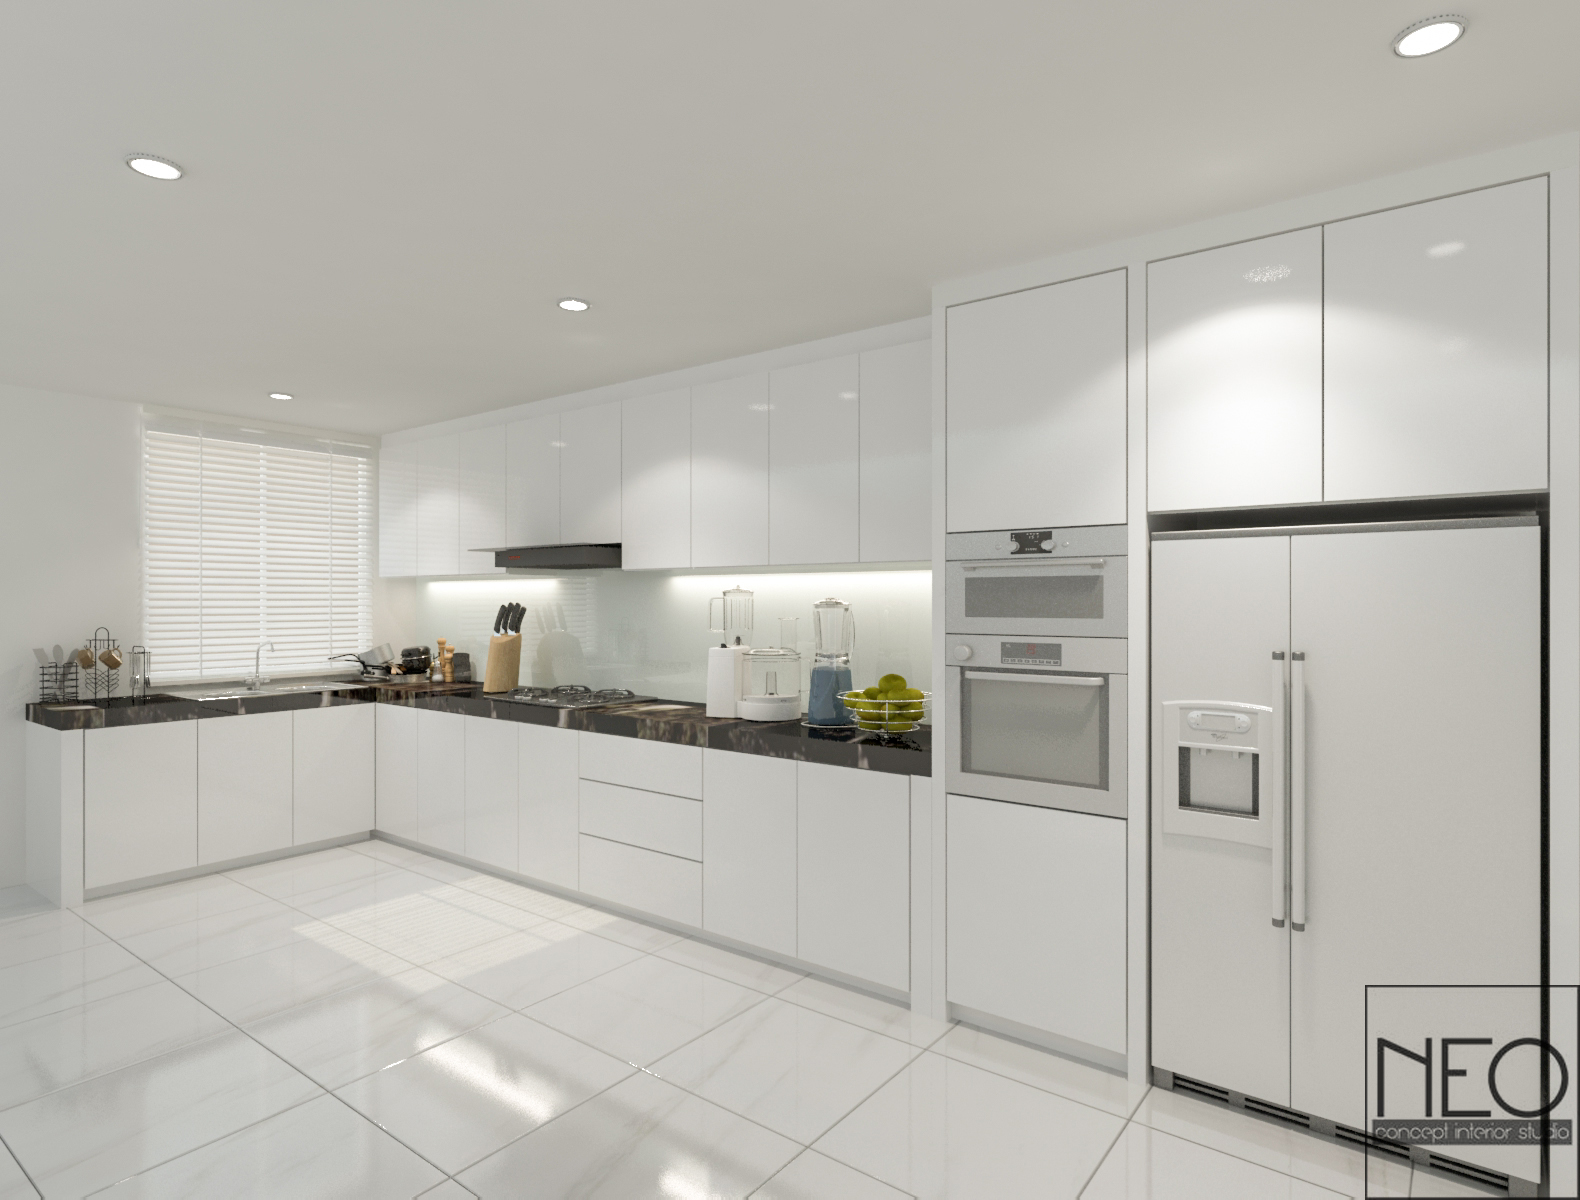 8 Ways To Make a Small Kitchen Look Bigger - Recommend LIVING